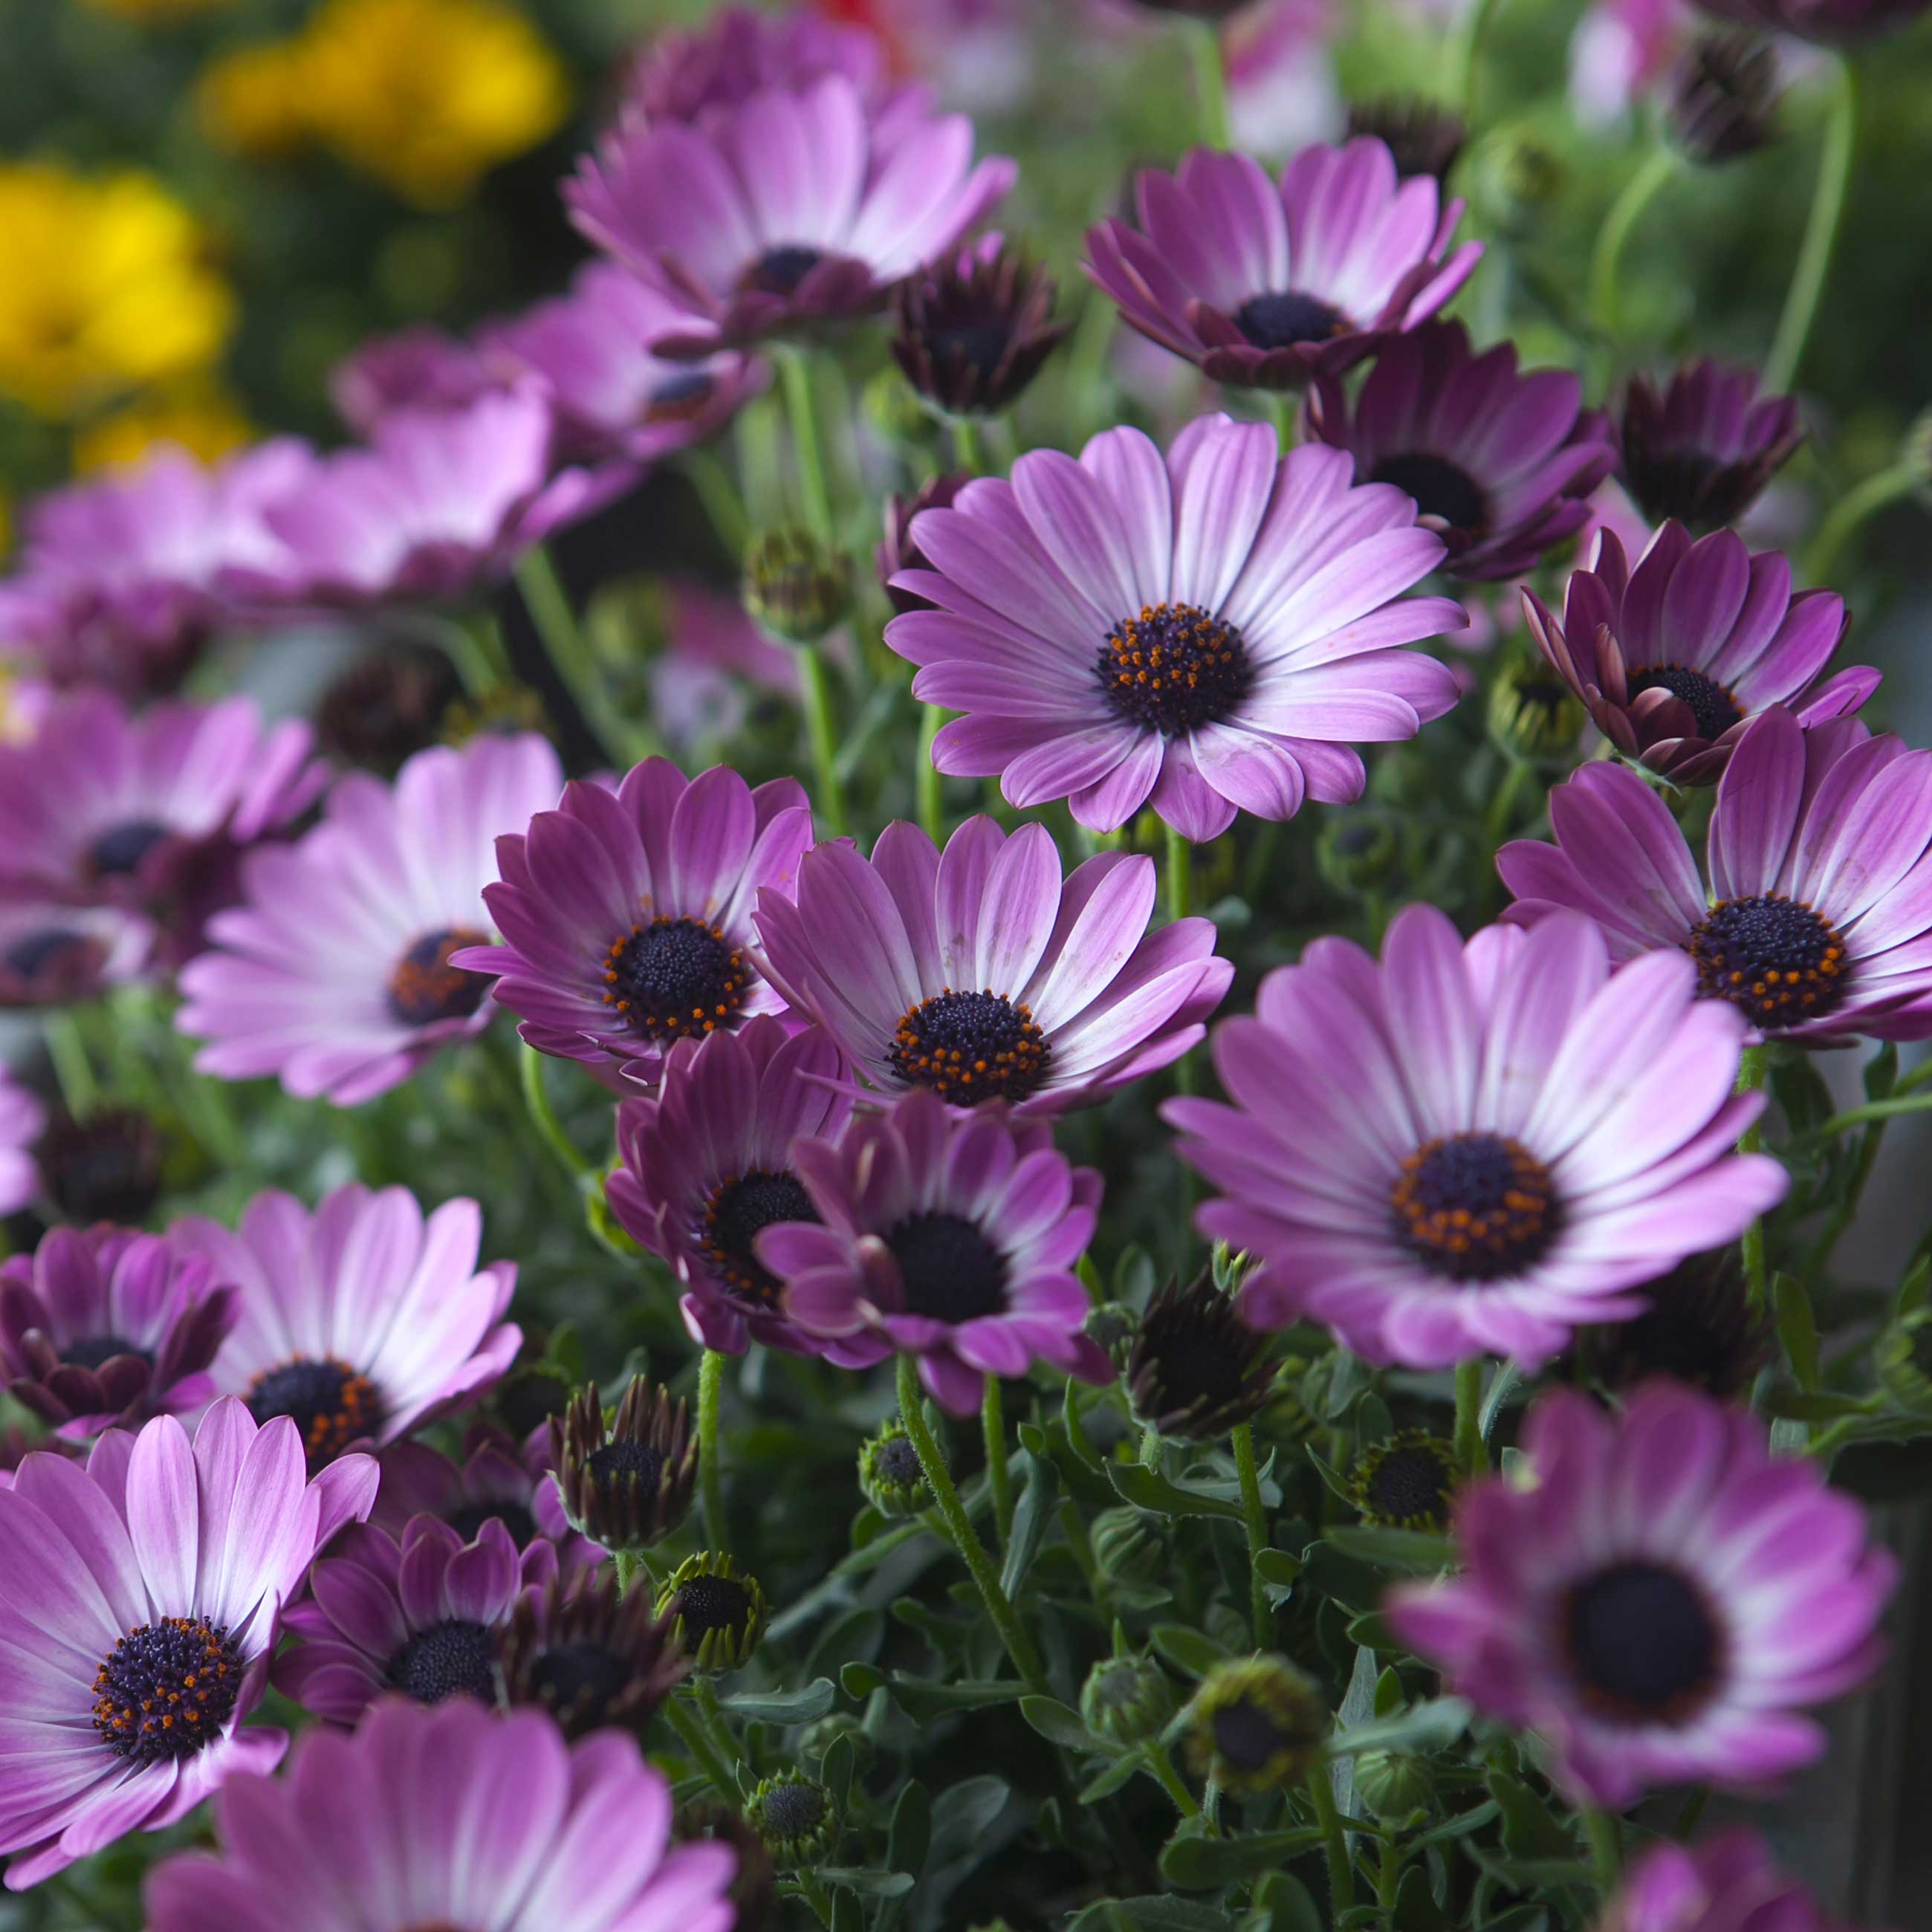 Osteosperumum---Fotolia_64966444_Subscription_L